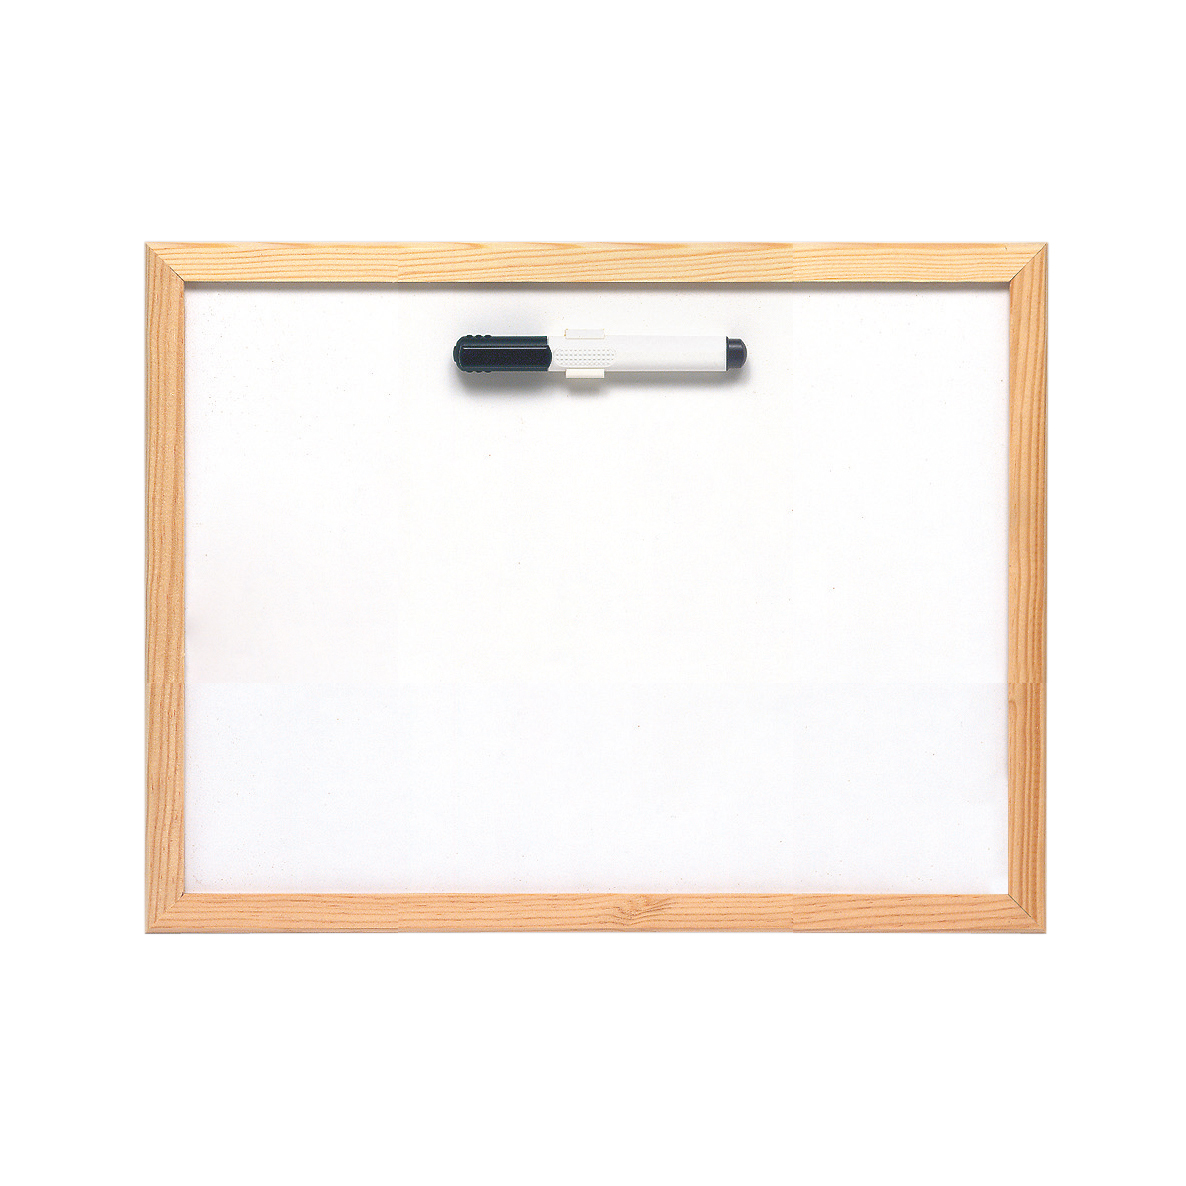 Dry erase boards or accessories 5 Star Lightweight Drywipe Board W400xH300mm Pine Frame